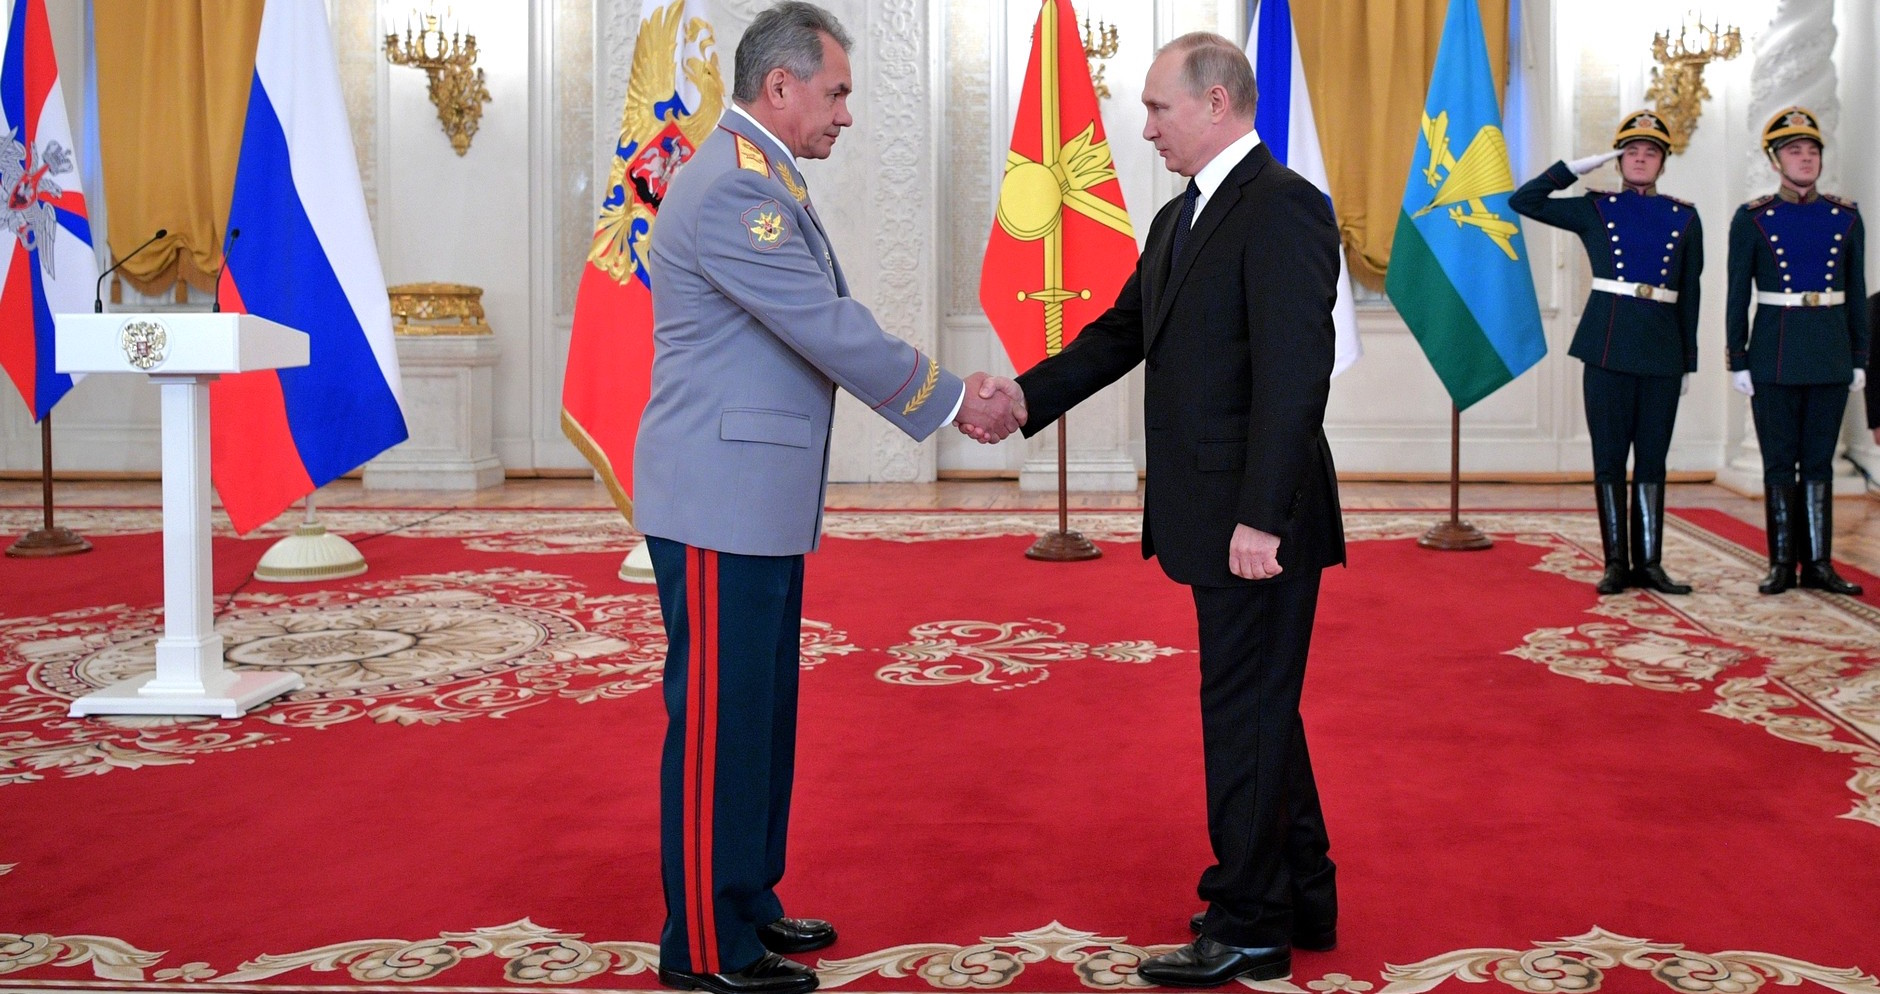 Russian Defence Minister Sergei Shoigu with President Vladimir Putin in December (Photo: Kremlin.ru)